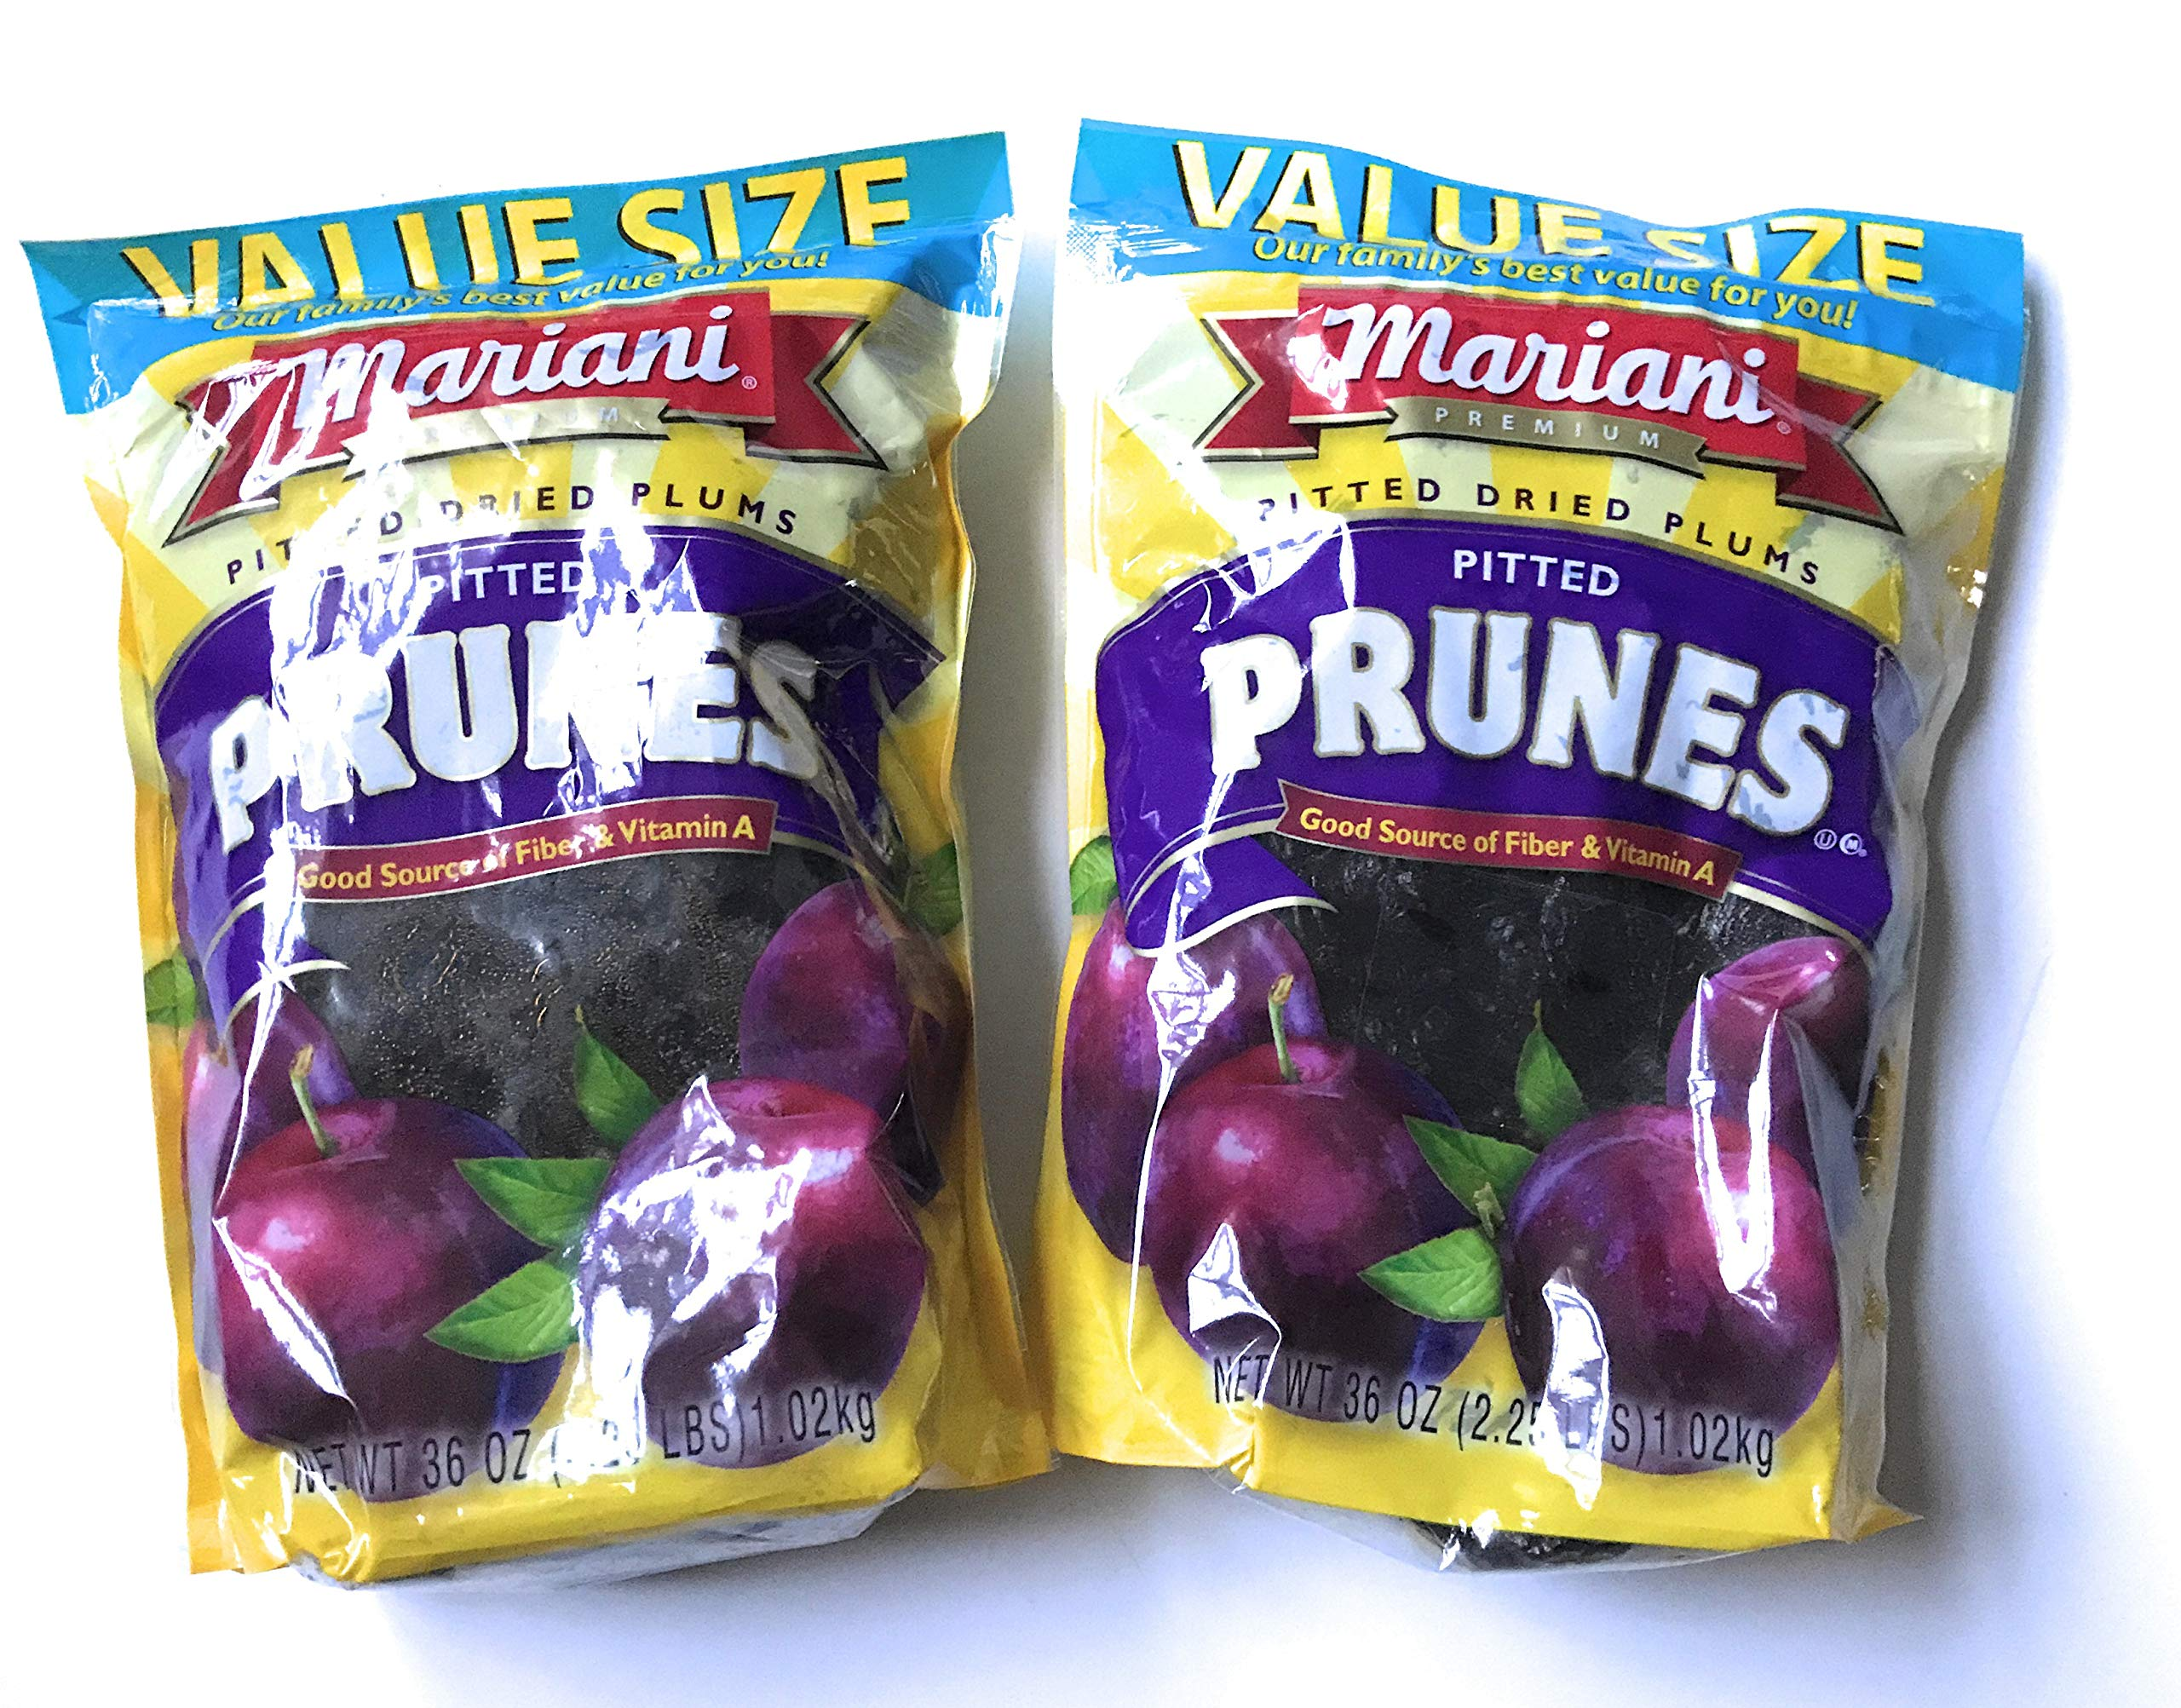 Mariani Pitted Dried Plums Pitted Prunes - TWO 36 oz Value Size Packages PLUS a Delicious Prune Recipe - GREAT VALUE!